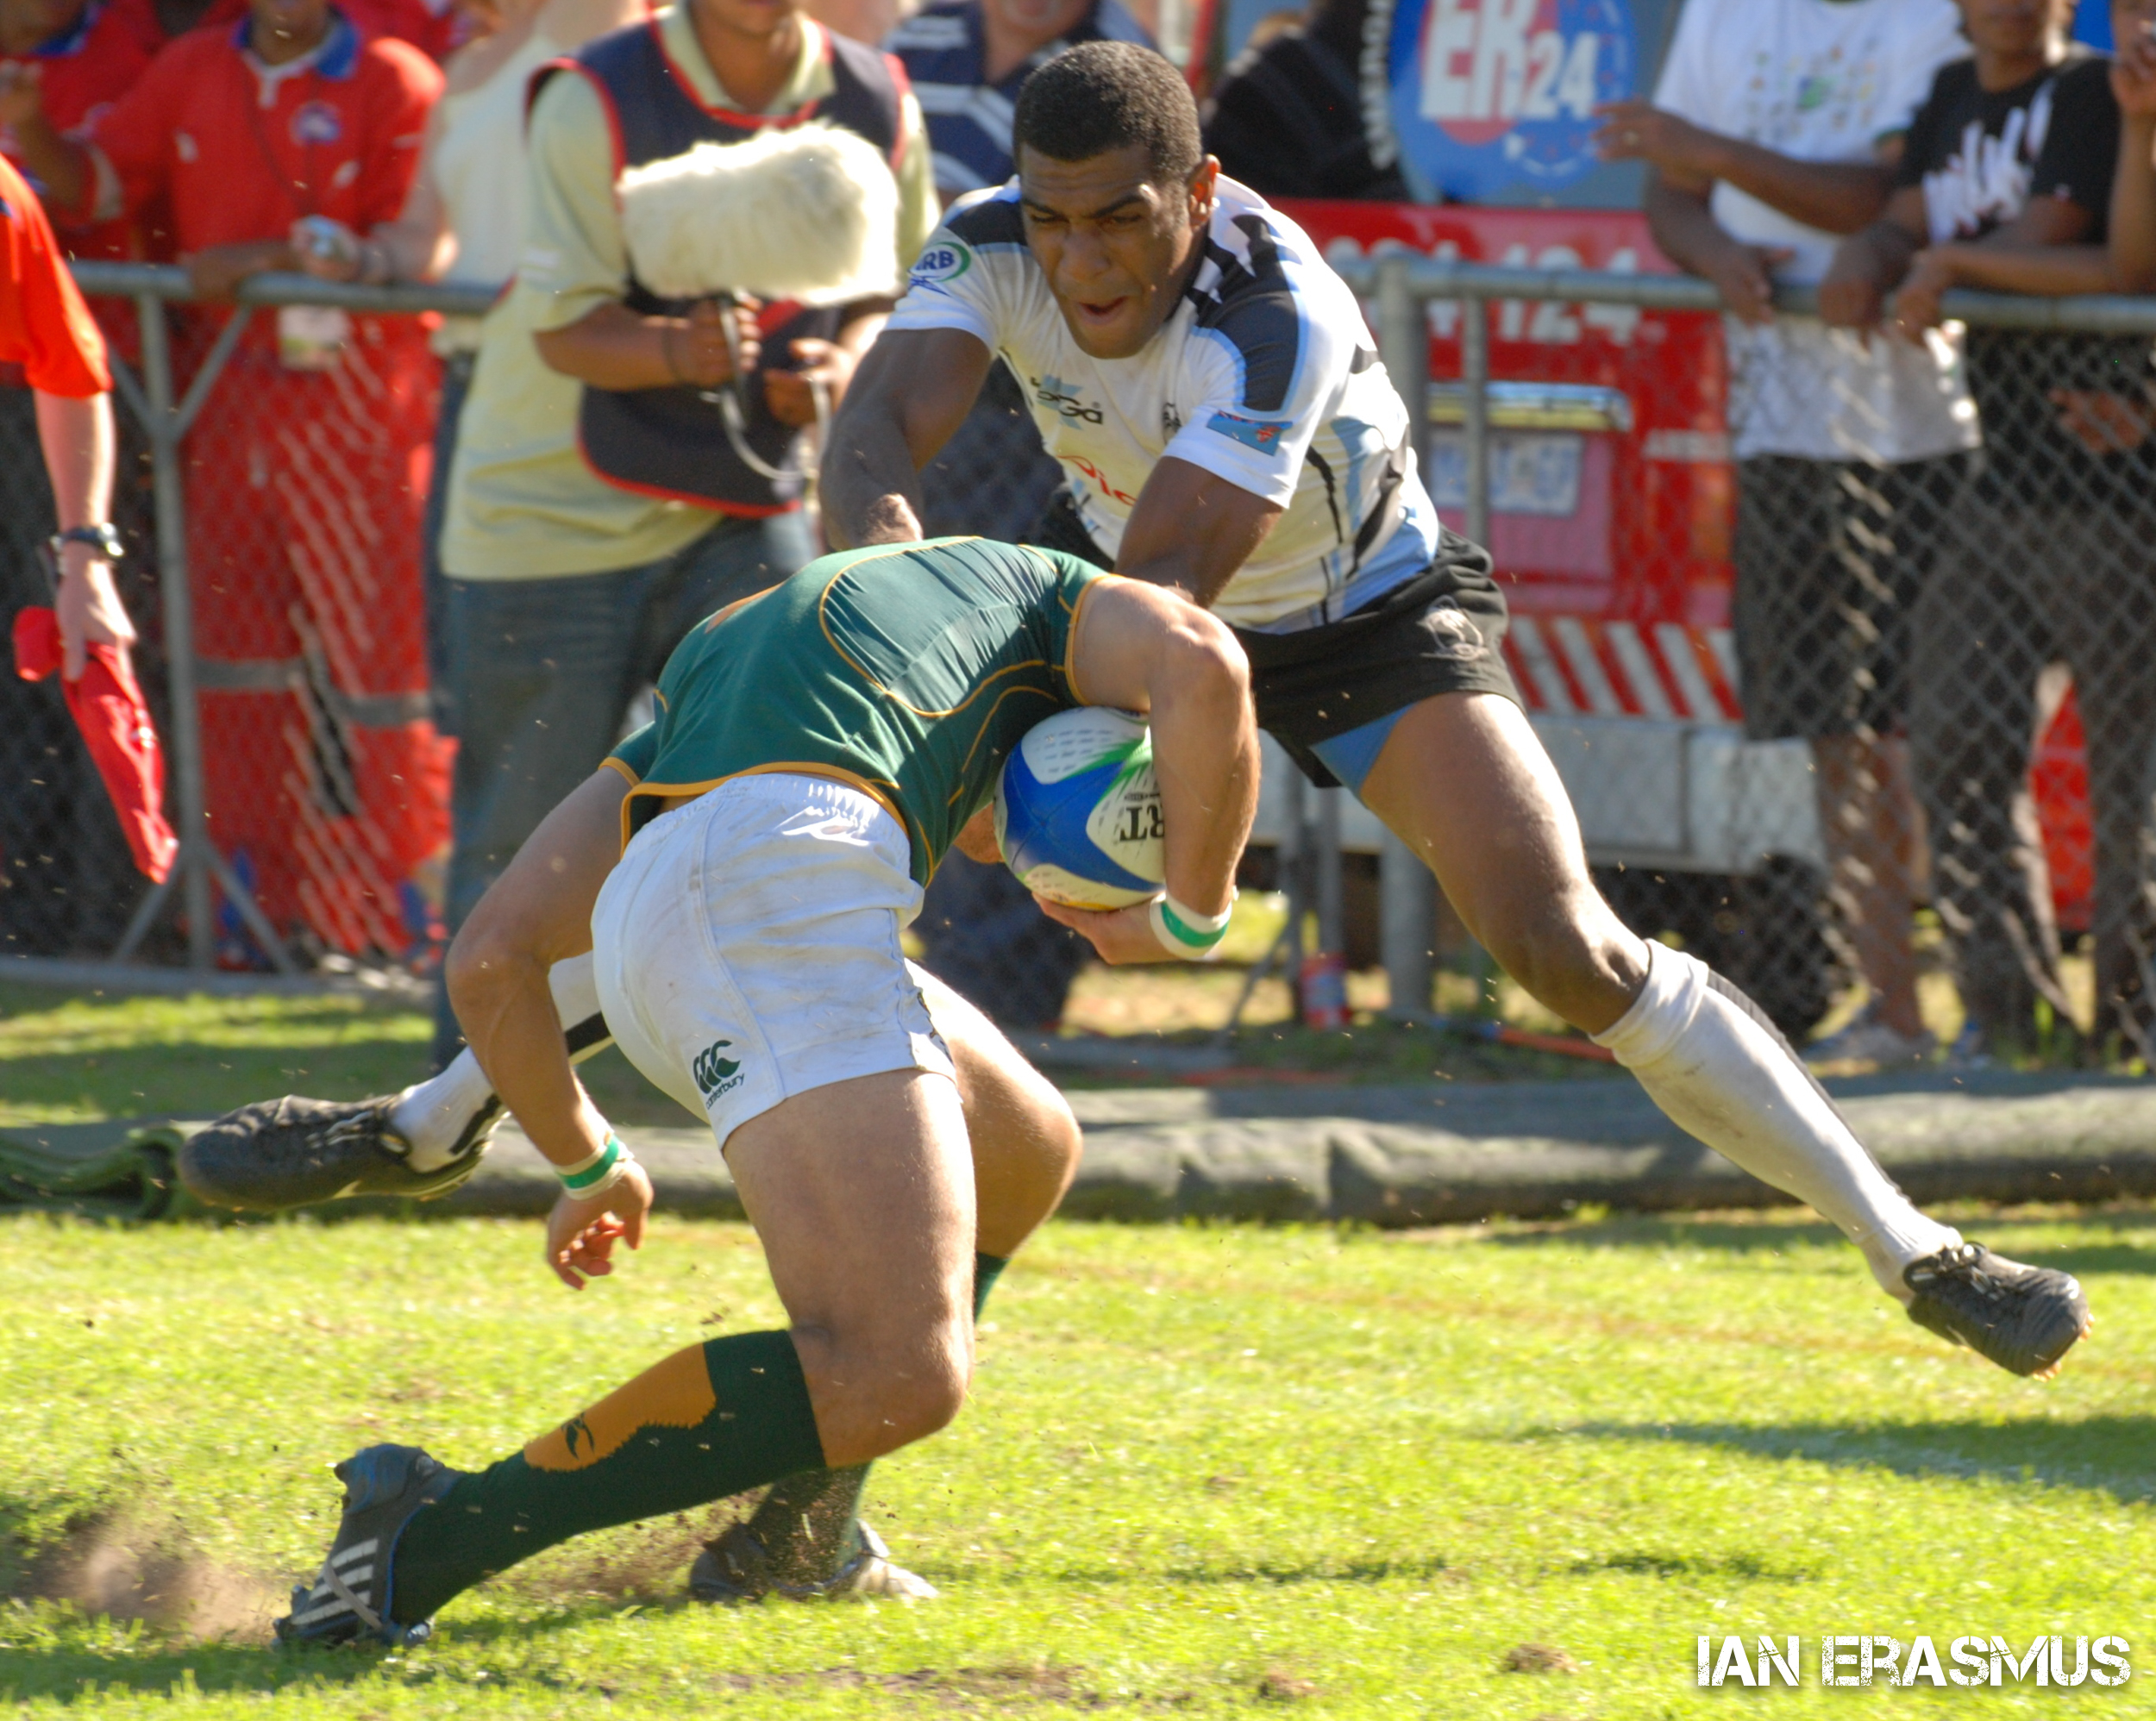 South Africa vs Fiji